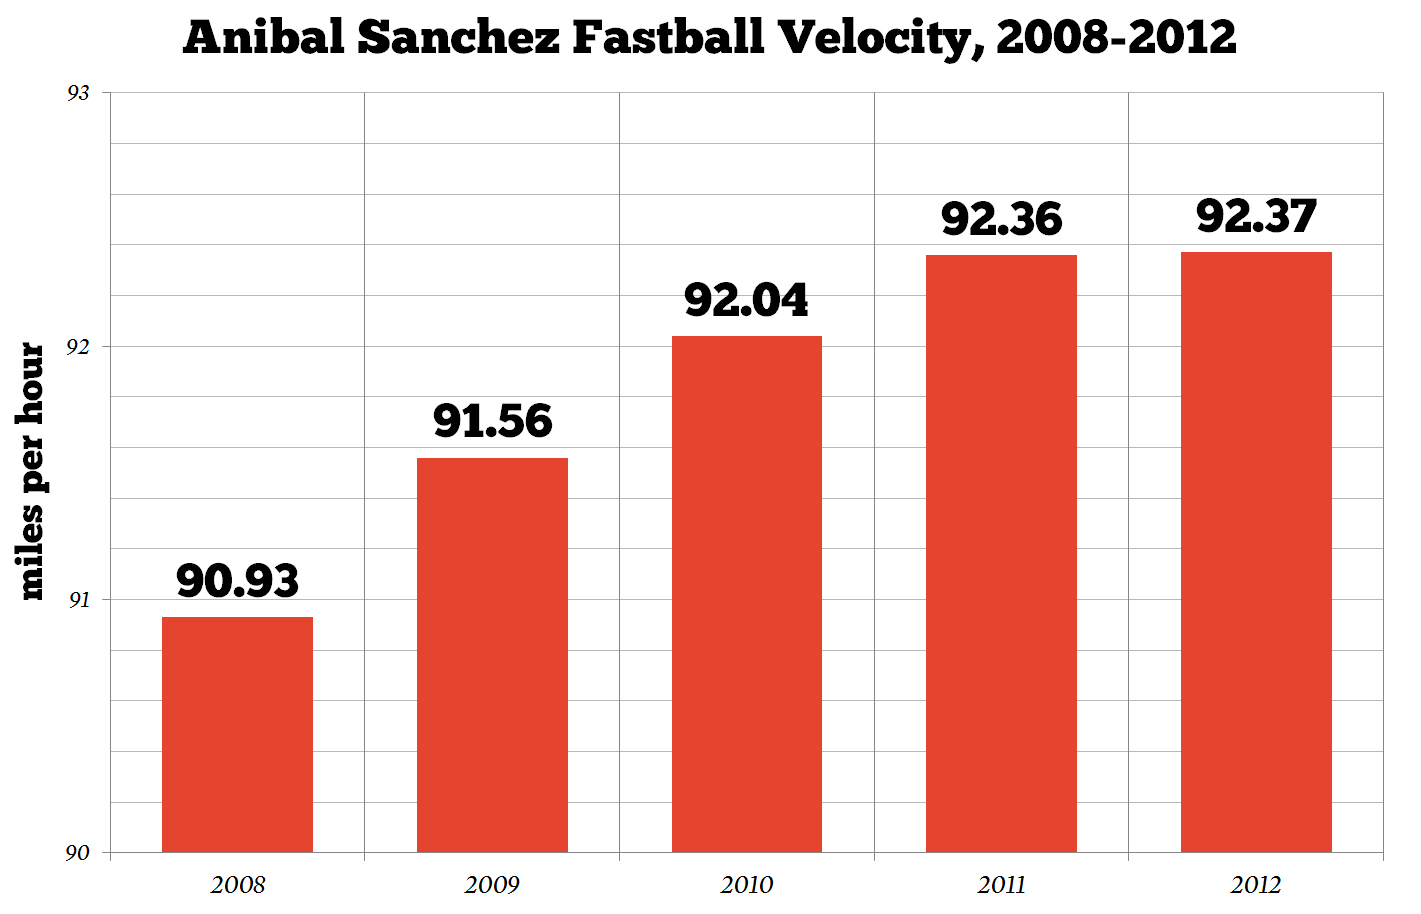 Anibal_sanchez_fastball_velocity_medium